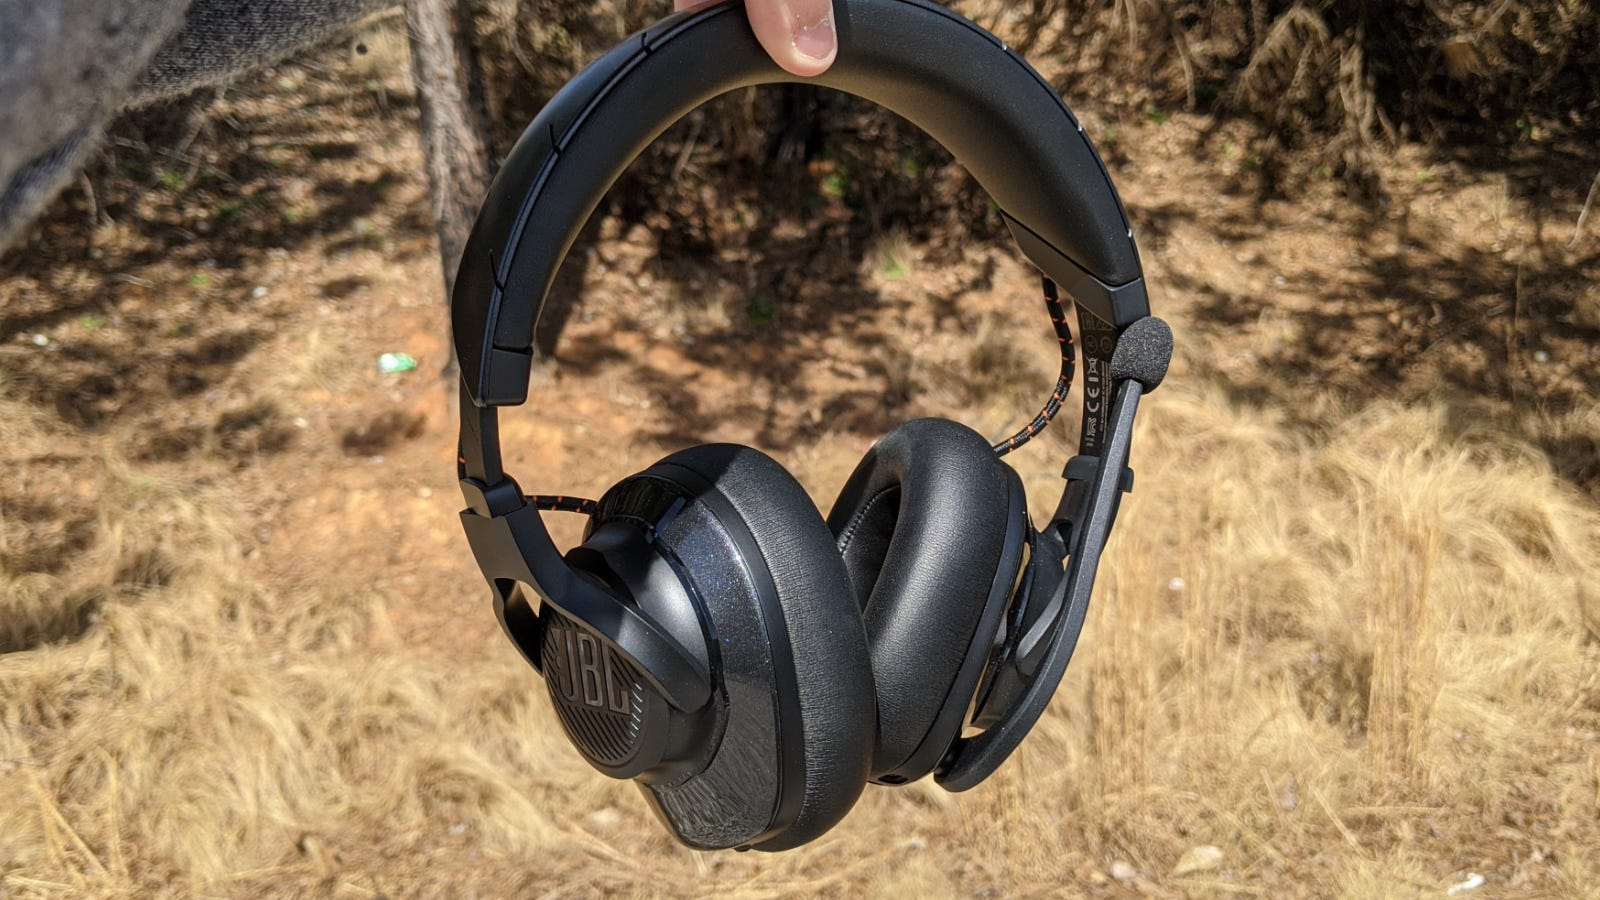 JBL Quantum 600 Headset held up against a forest backdrop